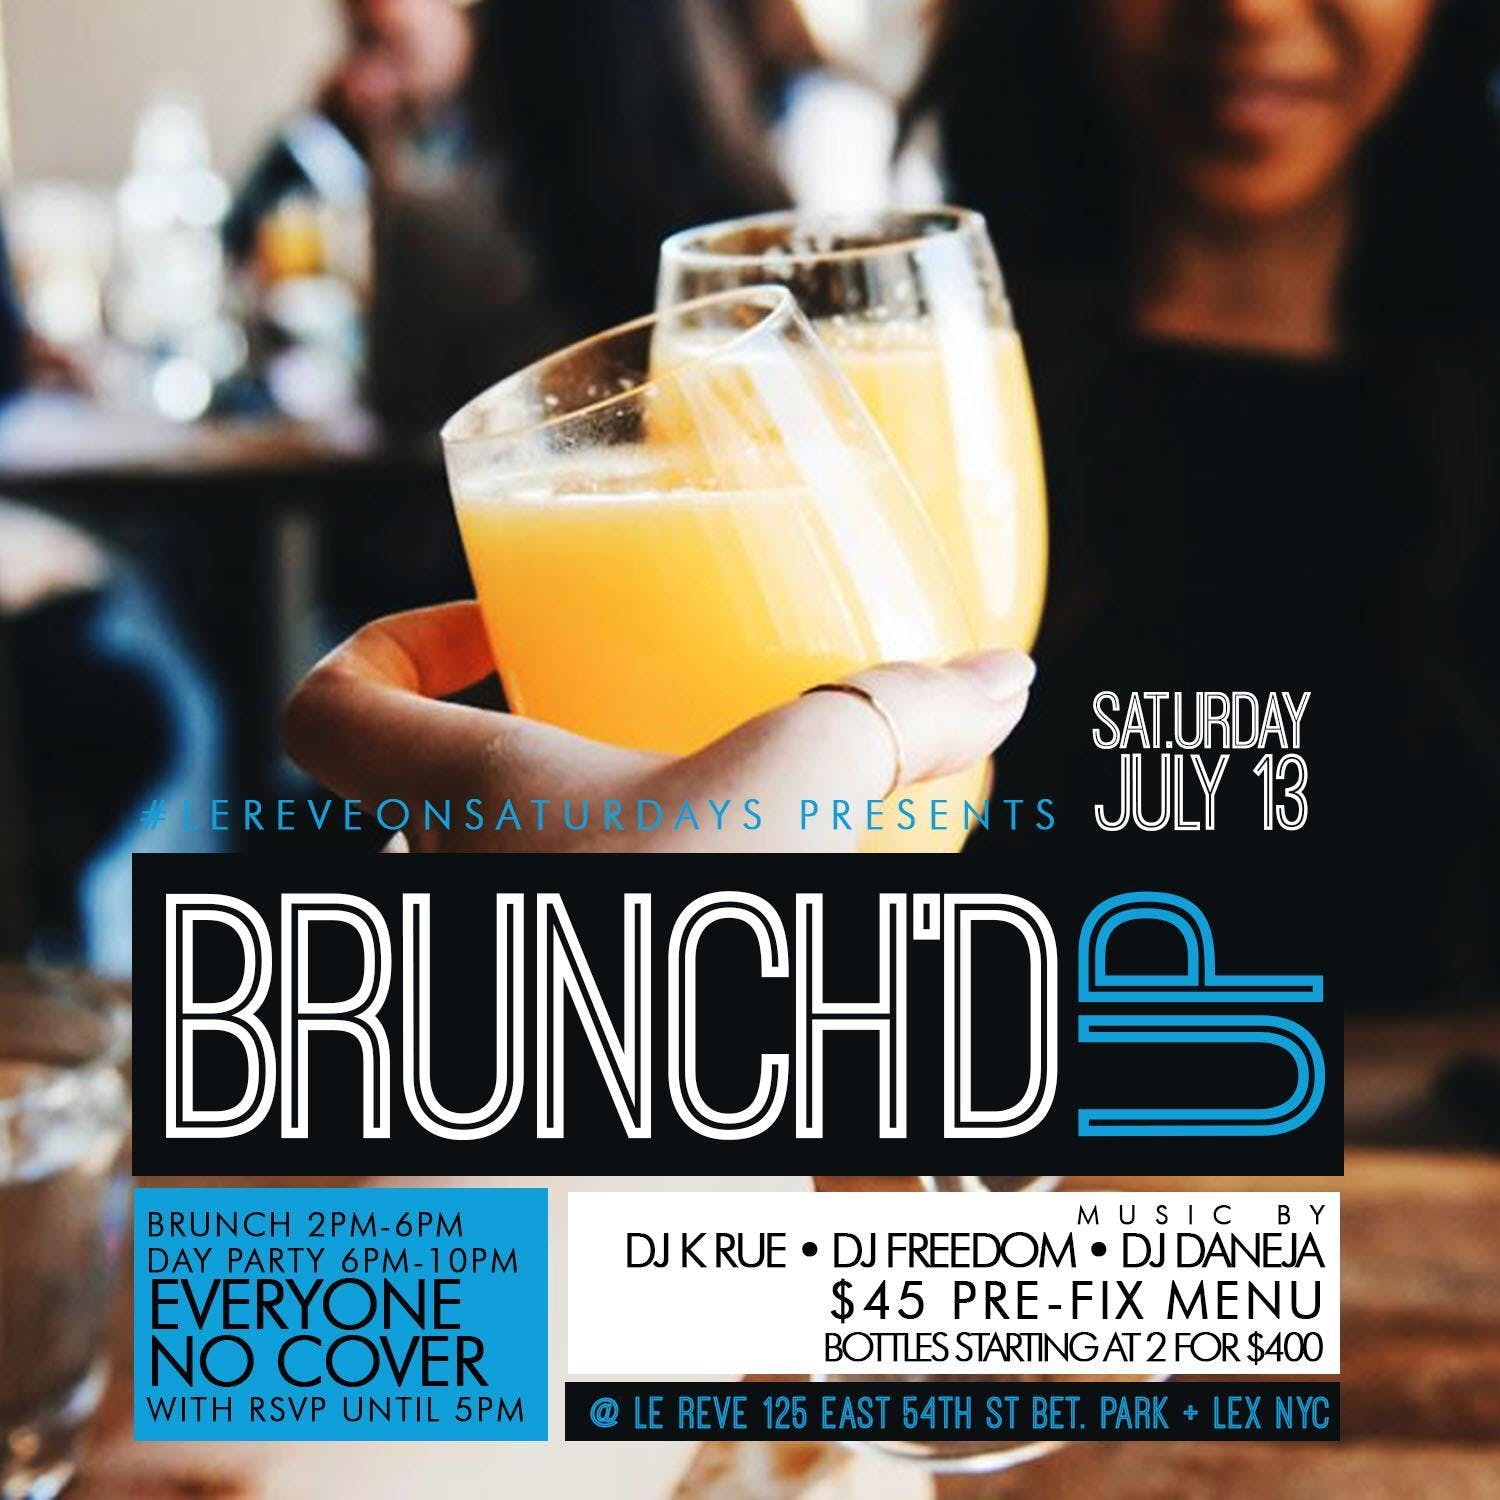 CEO FRESH PRESENTS:  BRUNCH'D UP  (BRUNCH & DAY PARTY) AT LE REVE NYC